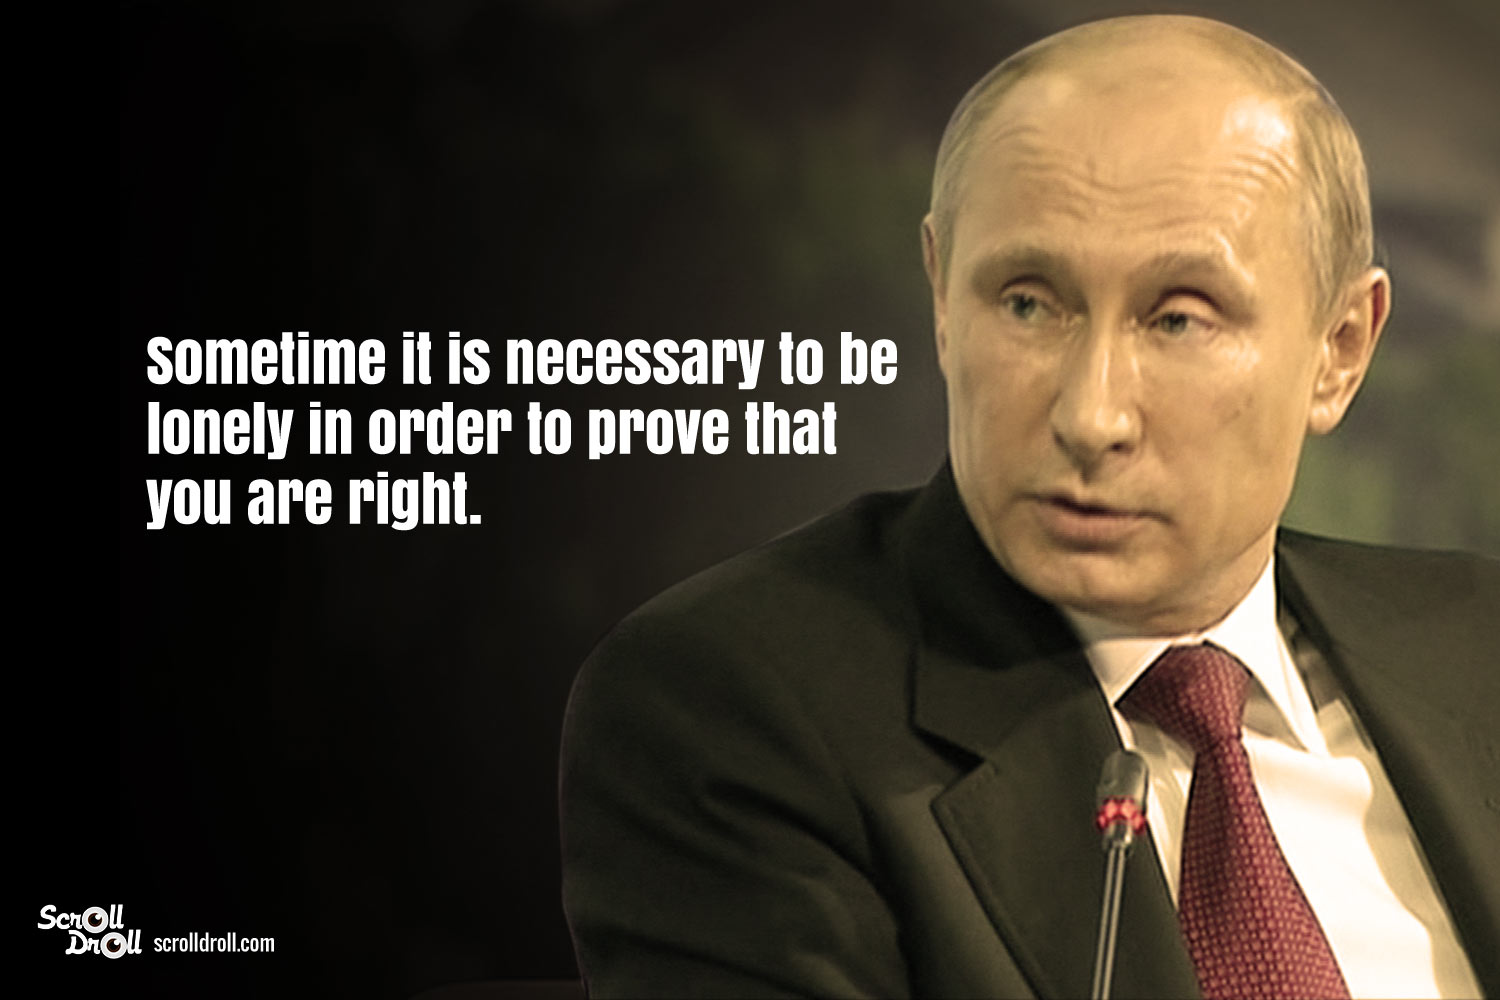 10 Powerful Quotes By Vladimir Putin The President Of Russia